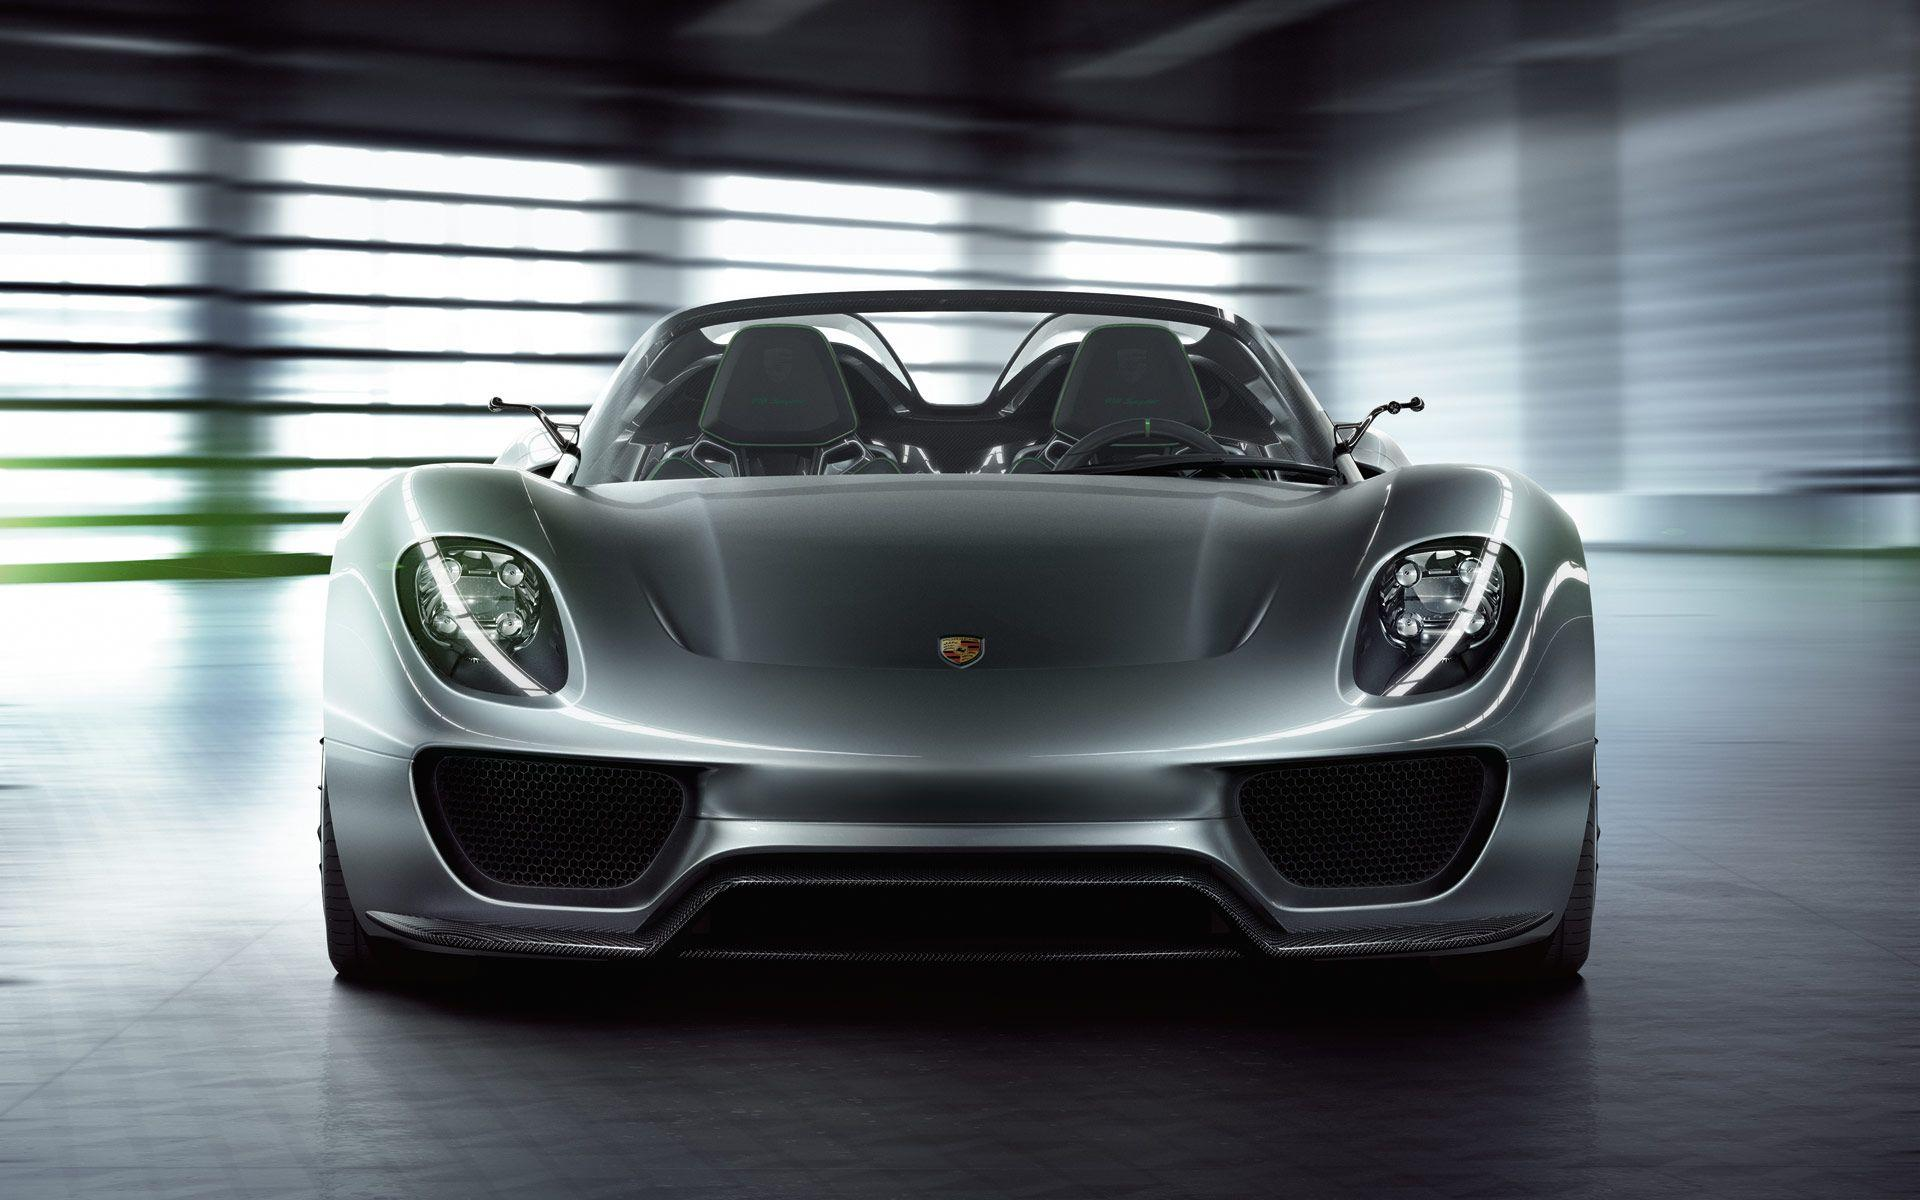 porsche 918 spyder wallpaper hd car wallpapers - Porsche 918 Spyder Wallpaper